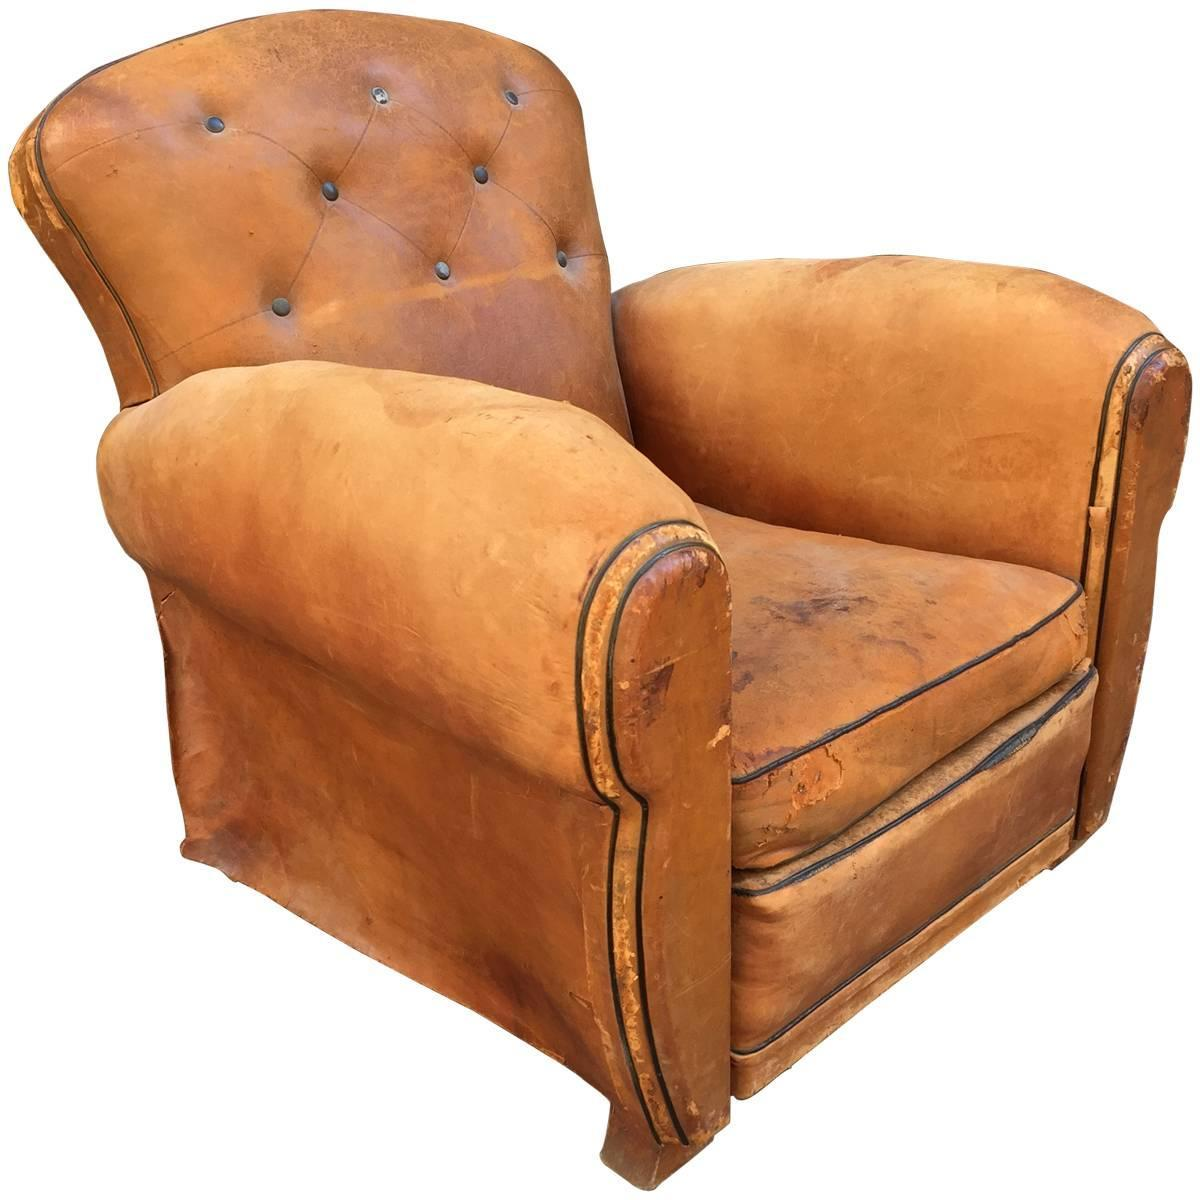 French Art Deco Cognac Leather Club Chair For Sale at 1stdibs